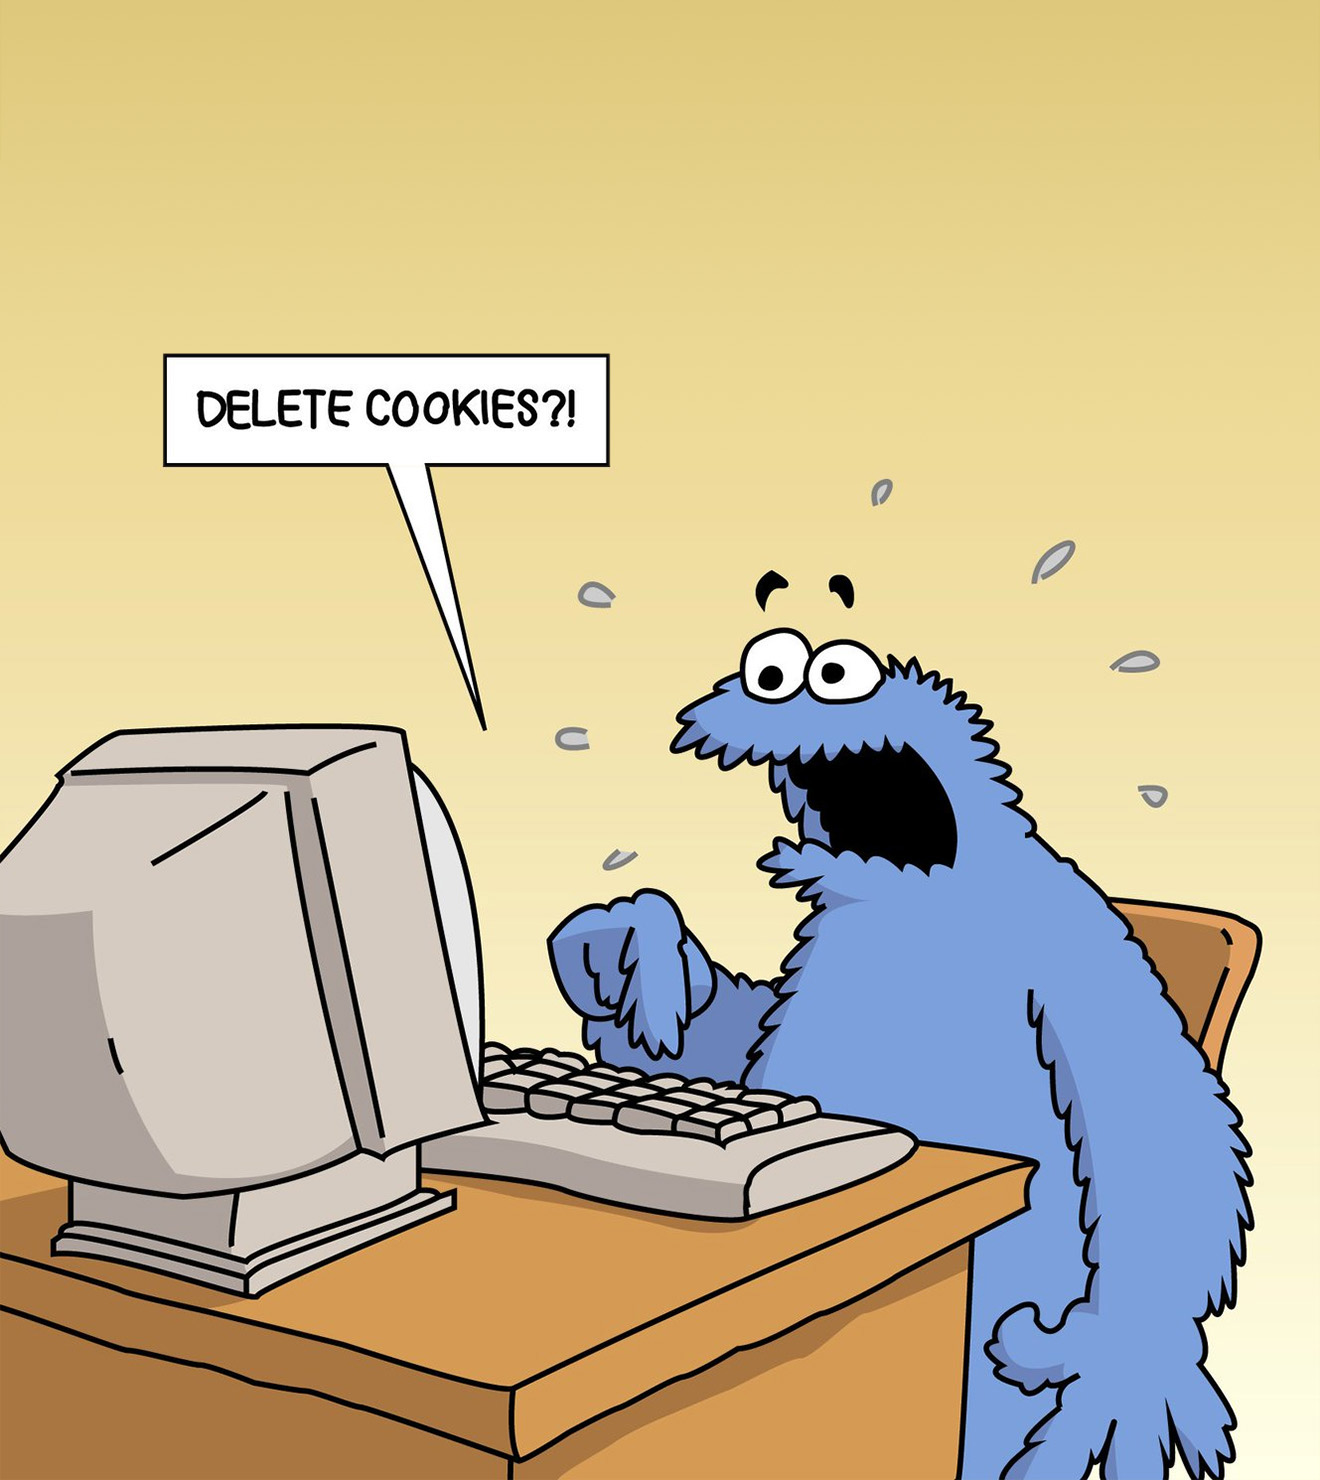 A Cartoon of Cookie Monster expressing despair at the proposition of deleting cookies.